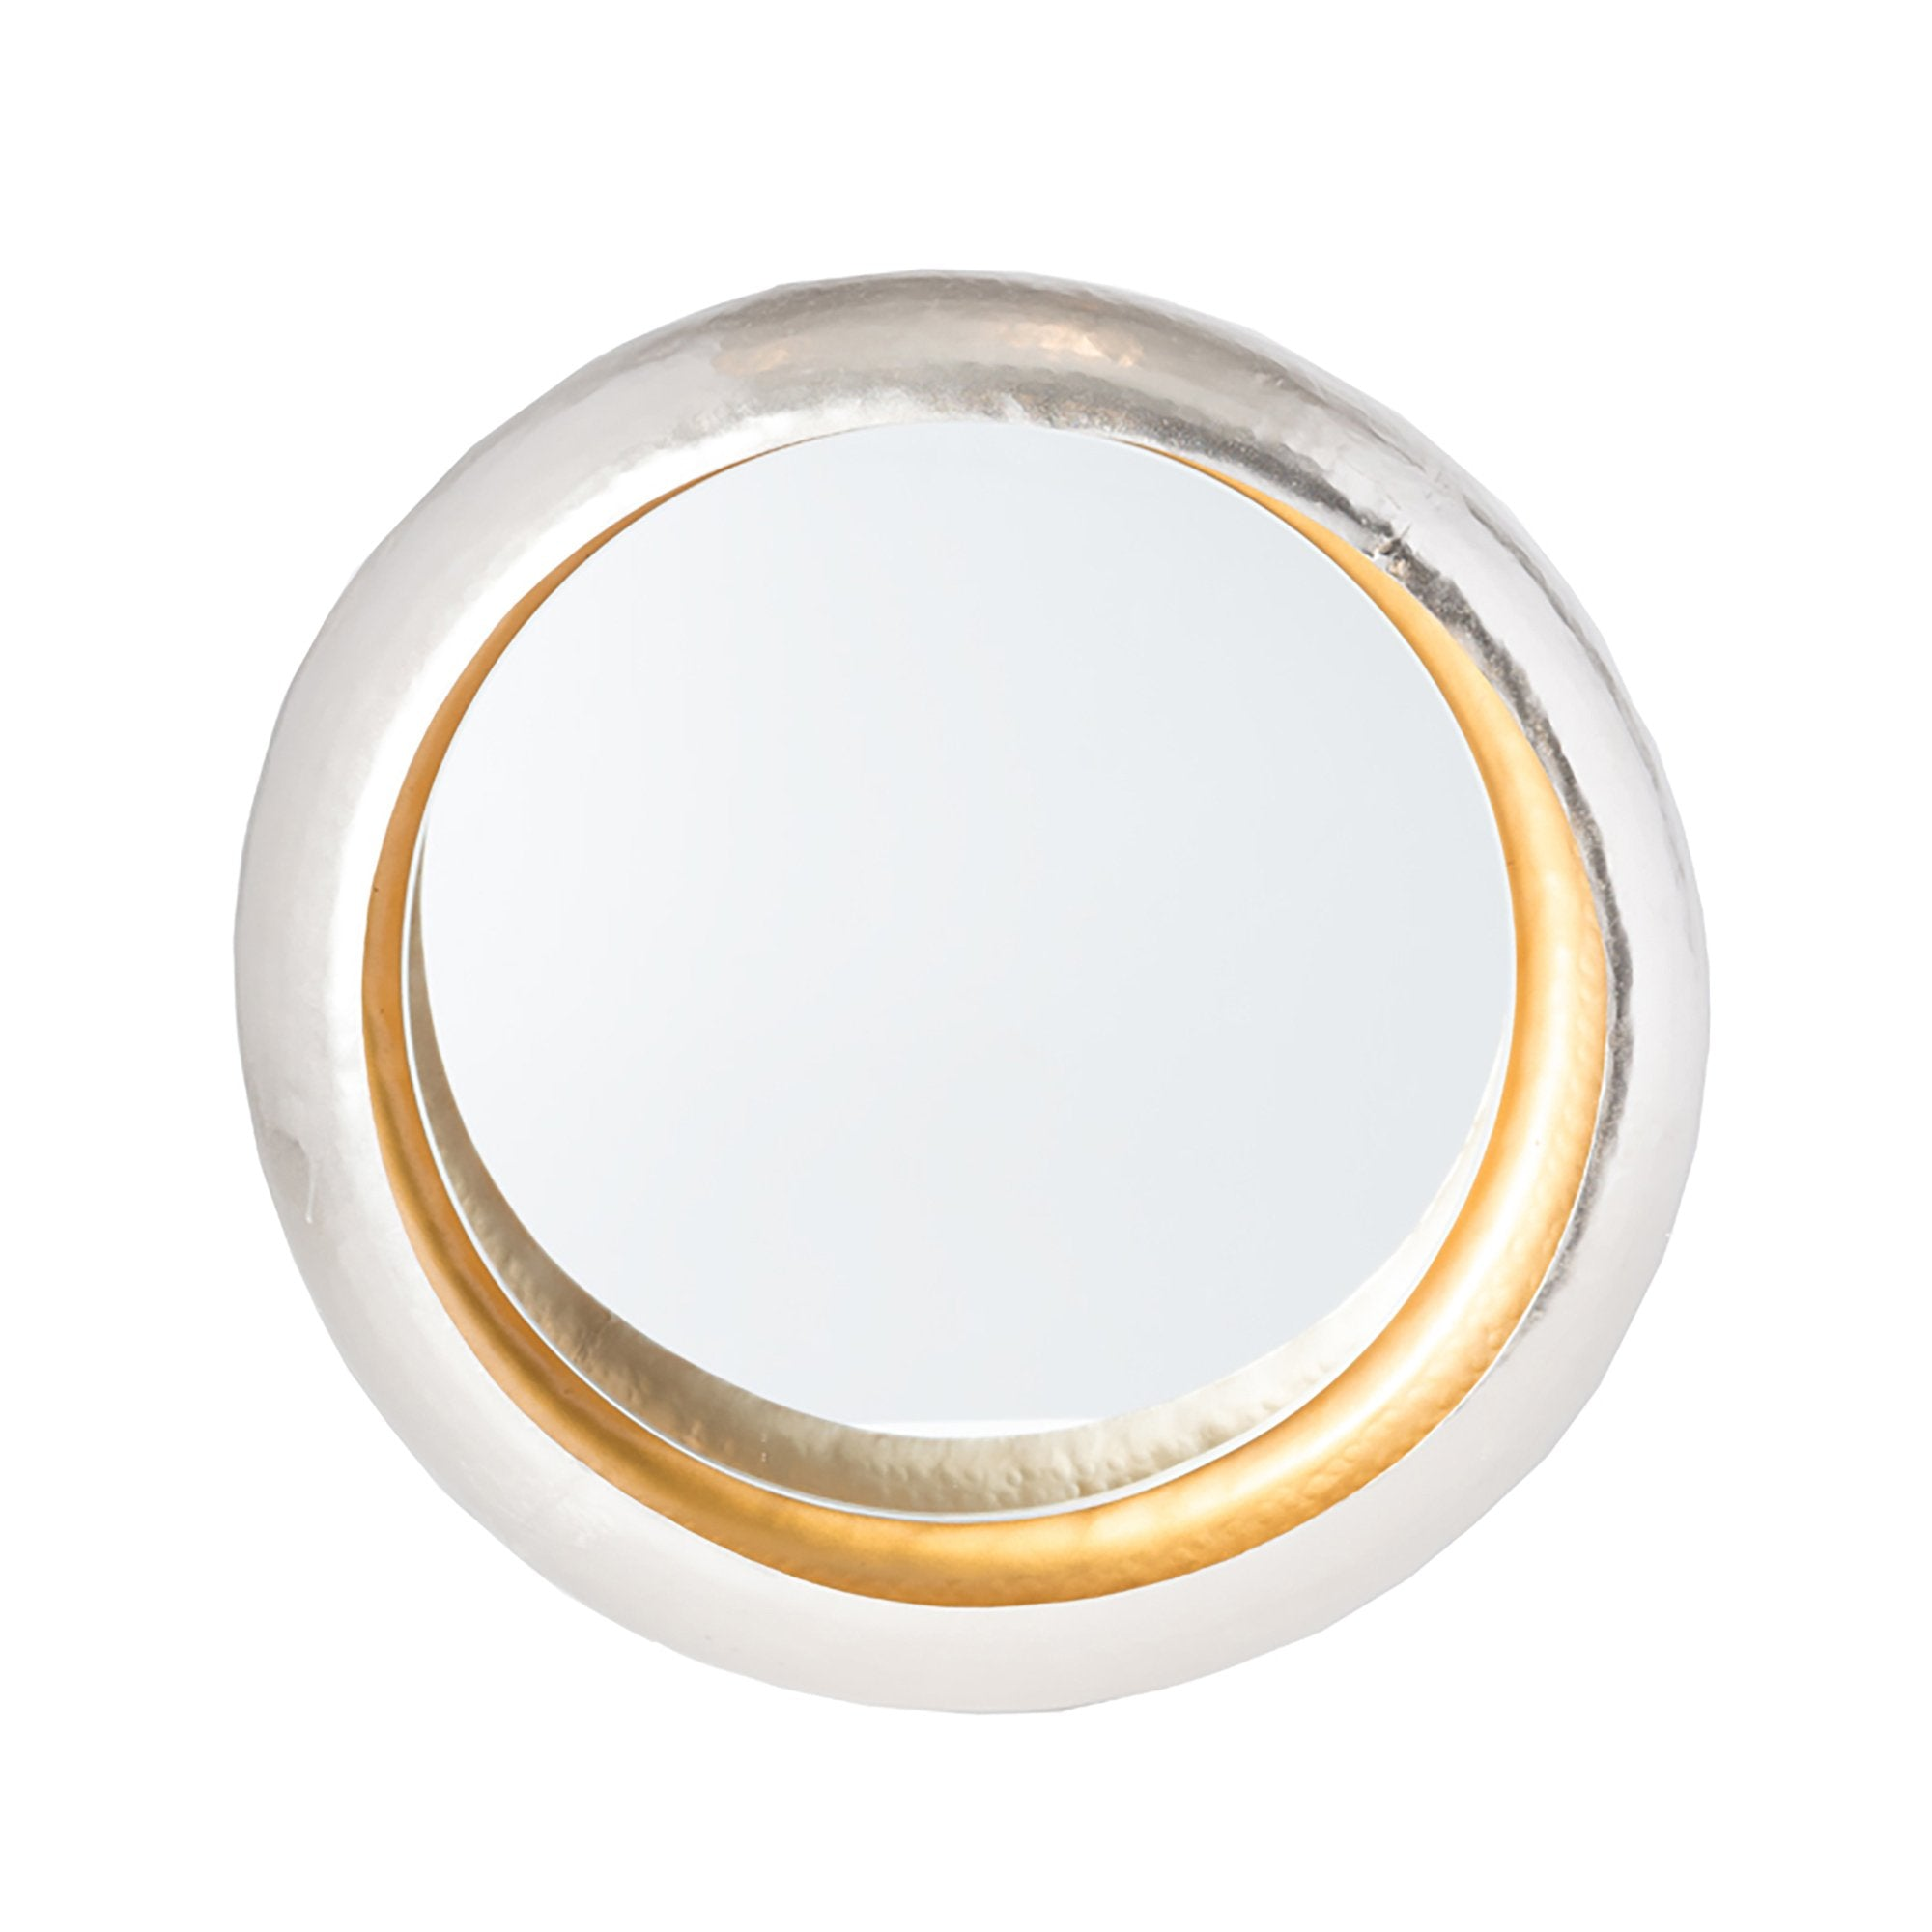 Picture of Earth Wind & Fire Circular Wall Mirror - Large